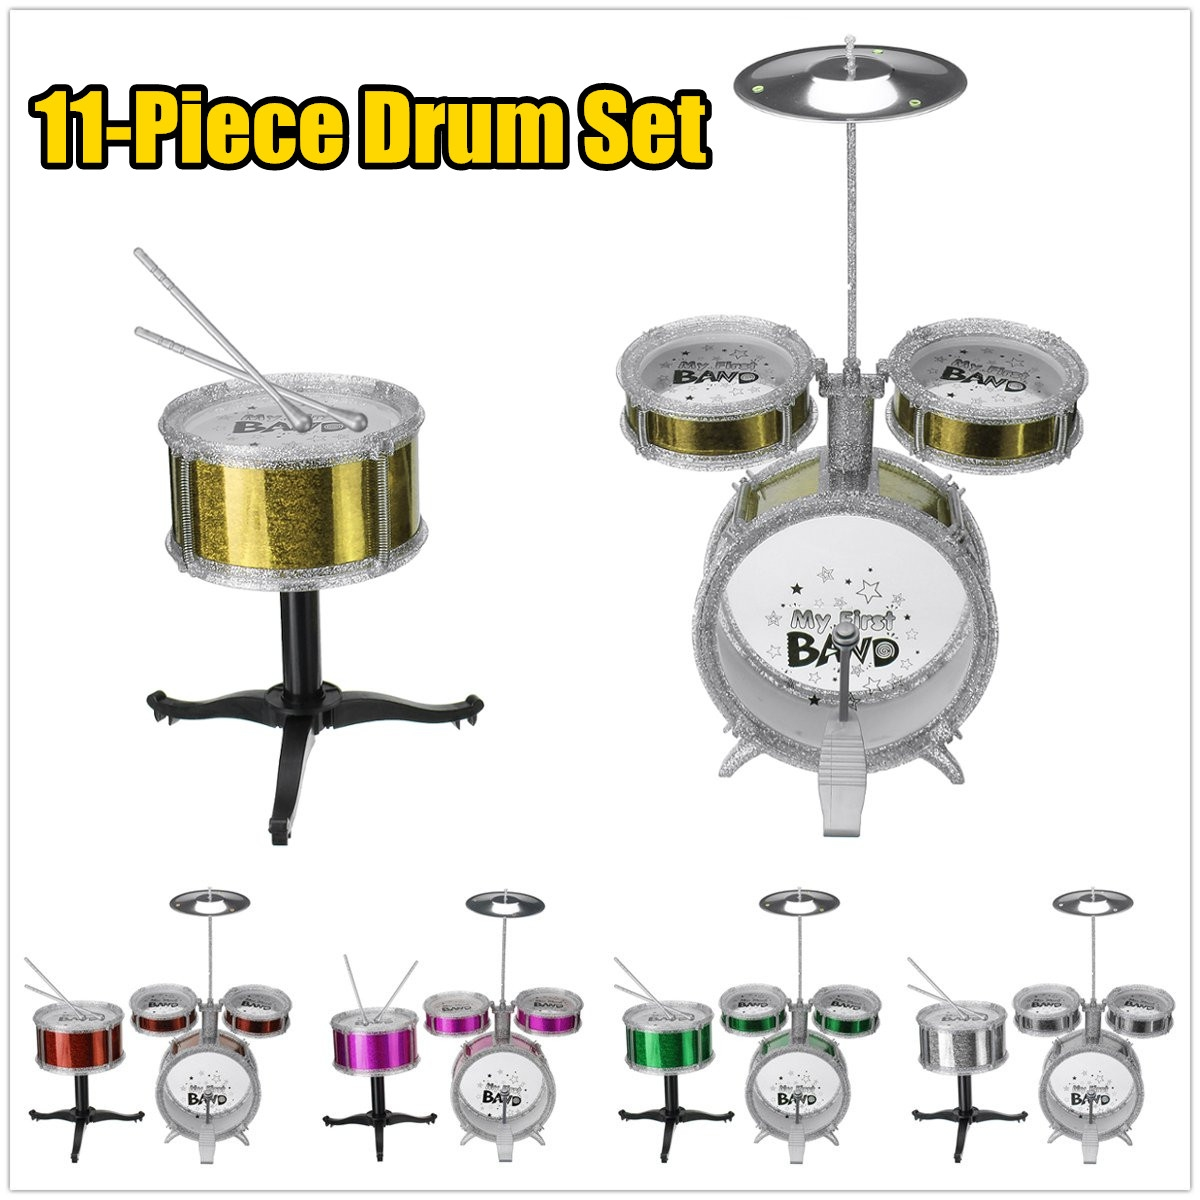 11-Piece Jazz Drum Set Electroplating Beat Drums Children's Educational Musical Toys